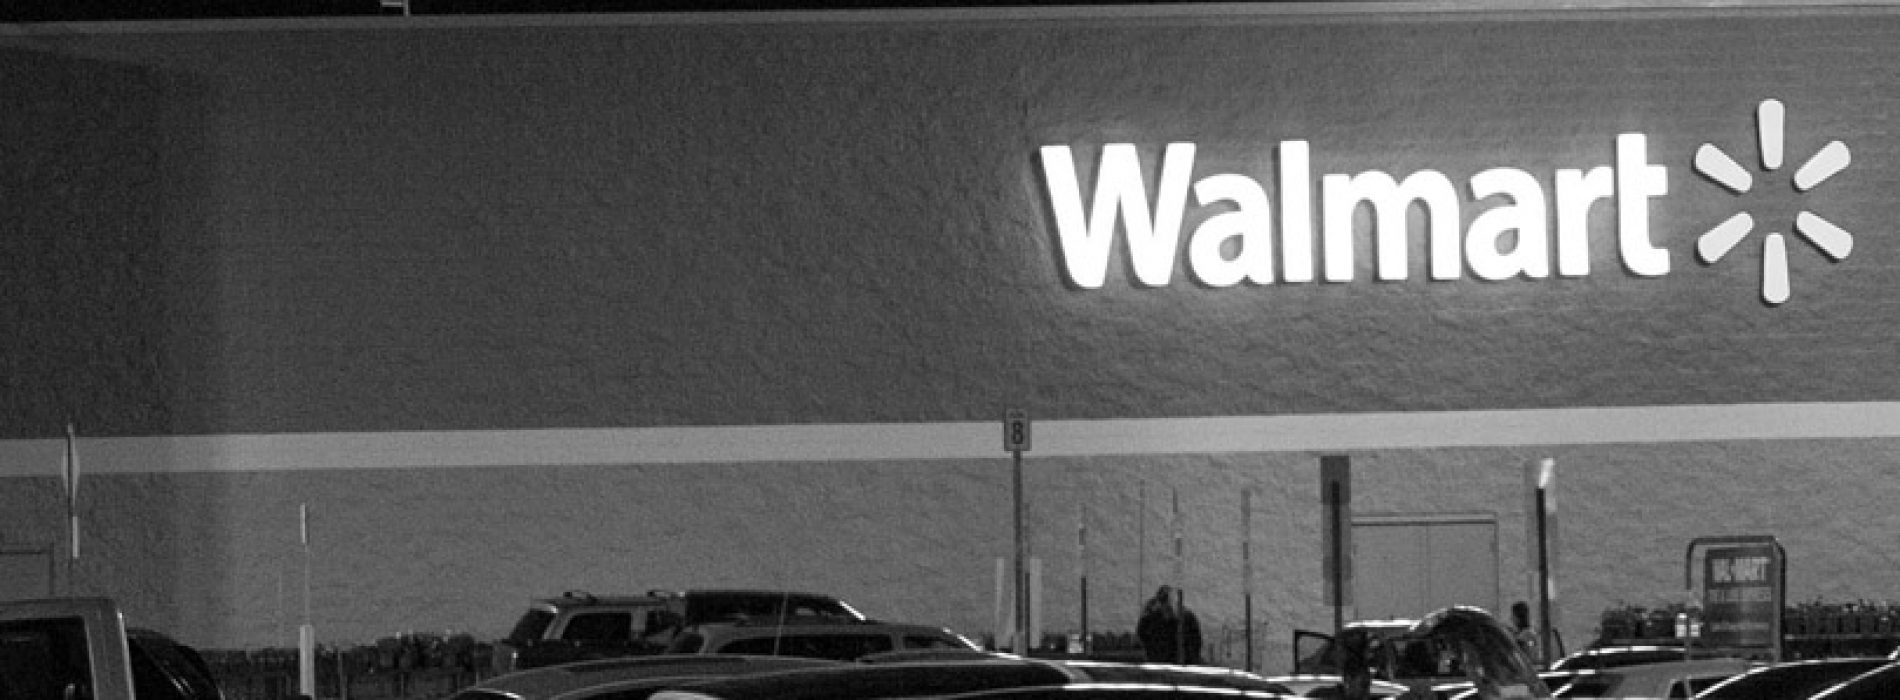 Maine Republicans celebrate tax breaks for Walmart moments before